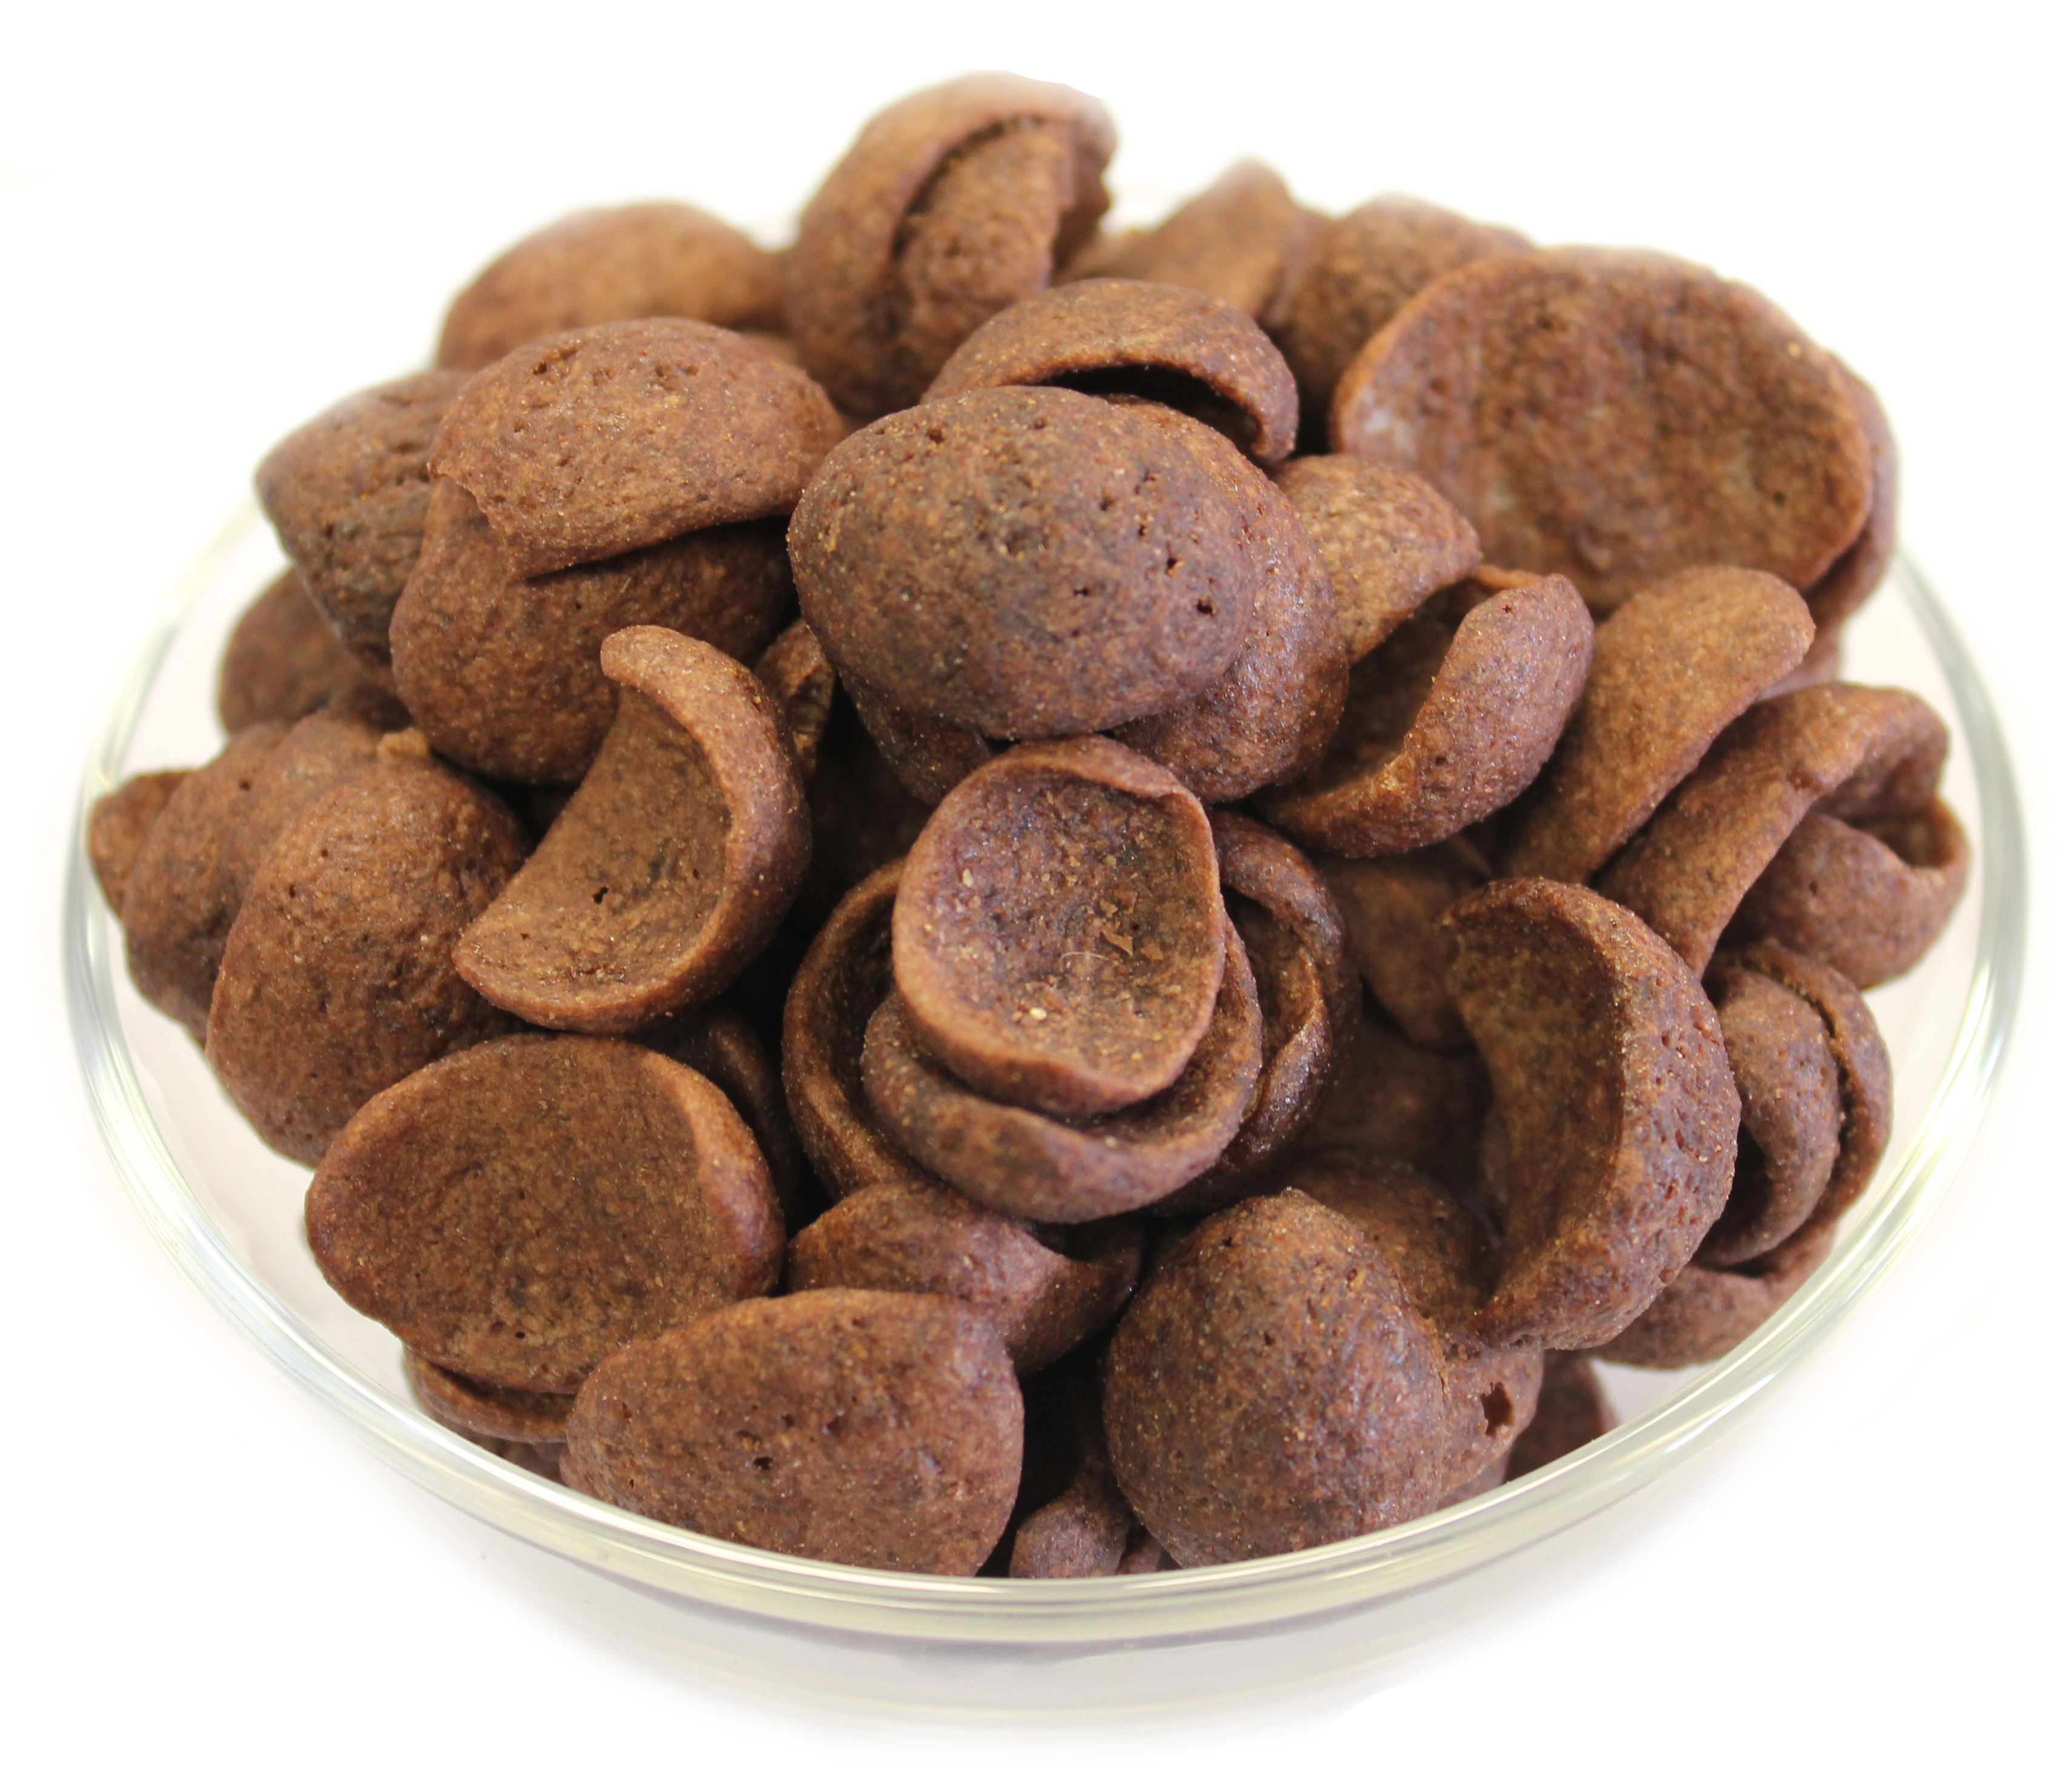 Chocolate Shells Cereals